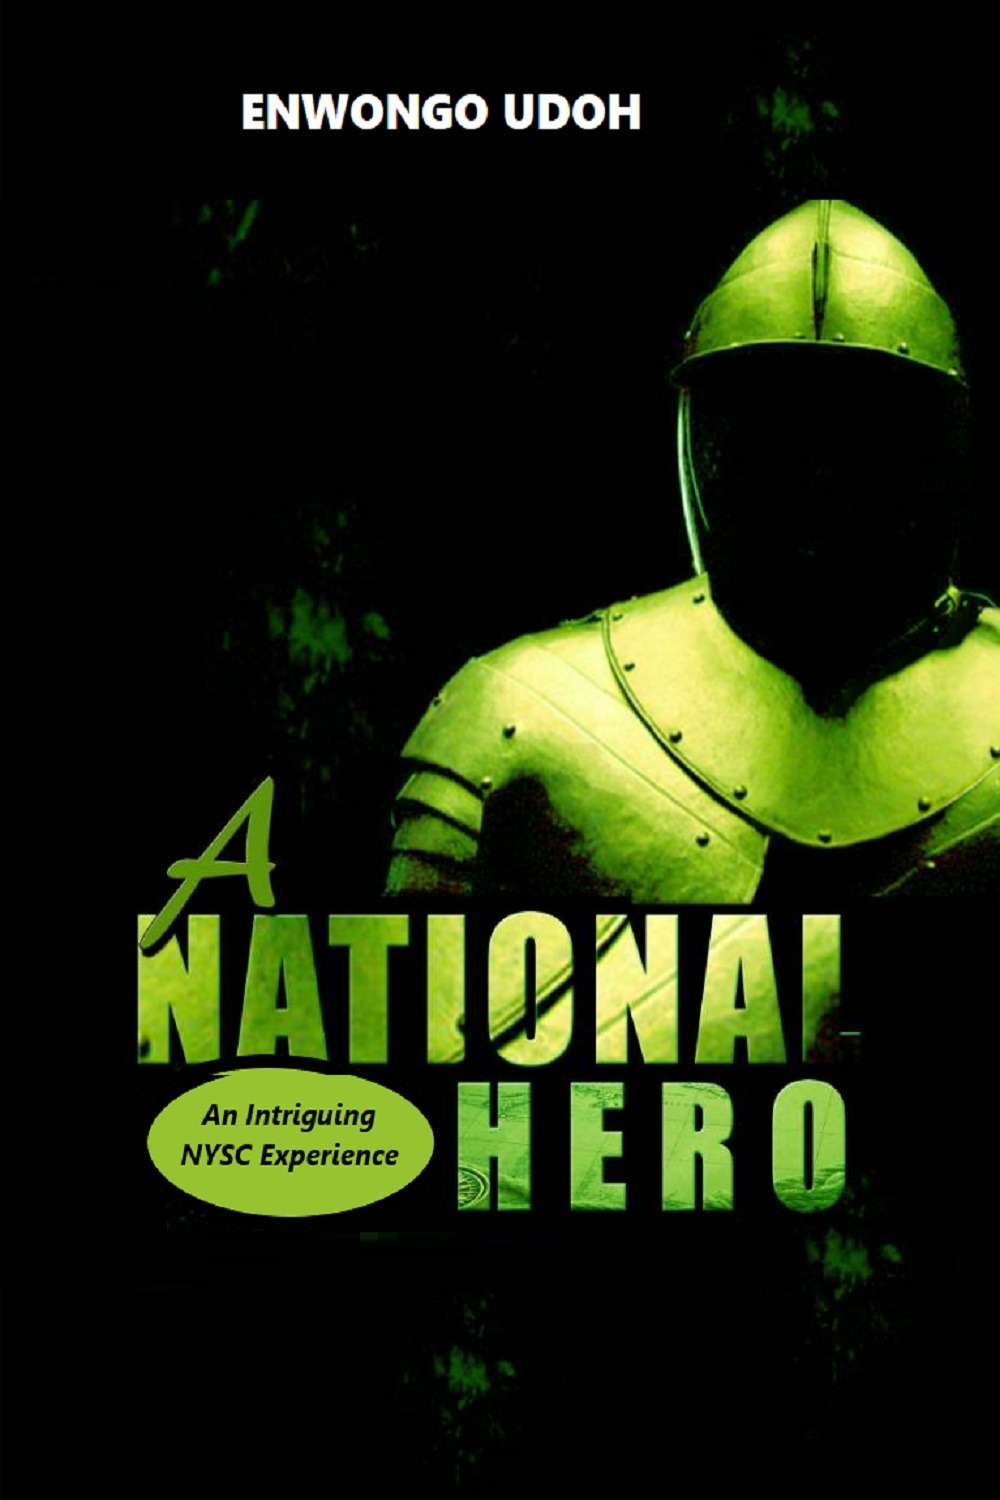 A National Hero: An Intriguing NYSC Experience